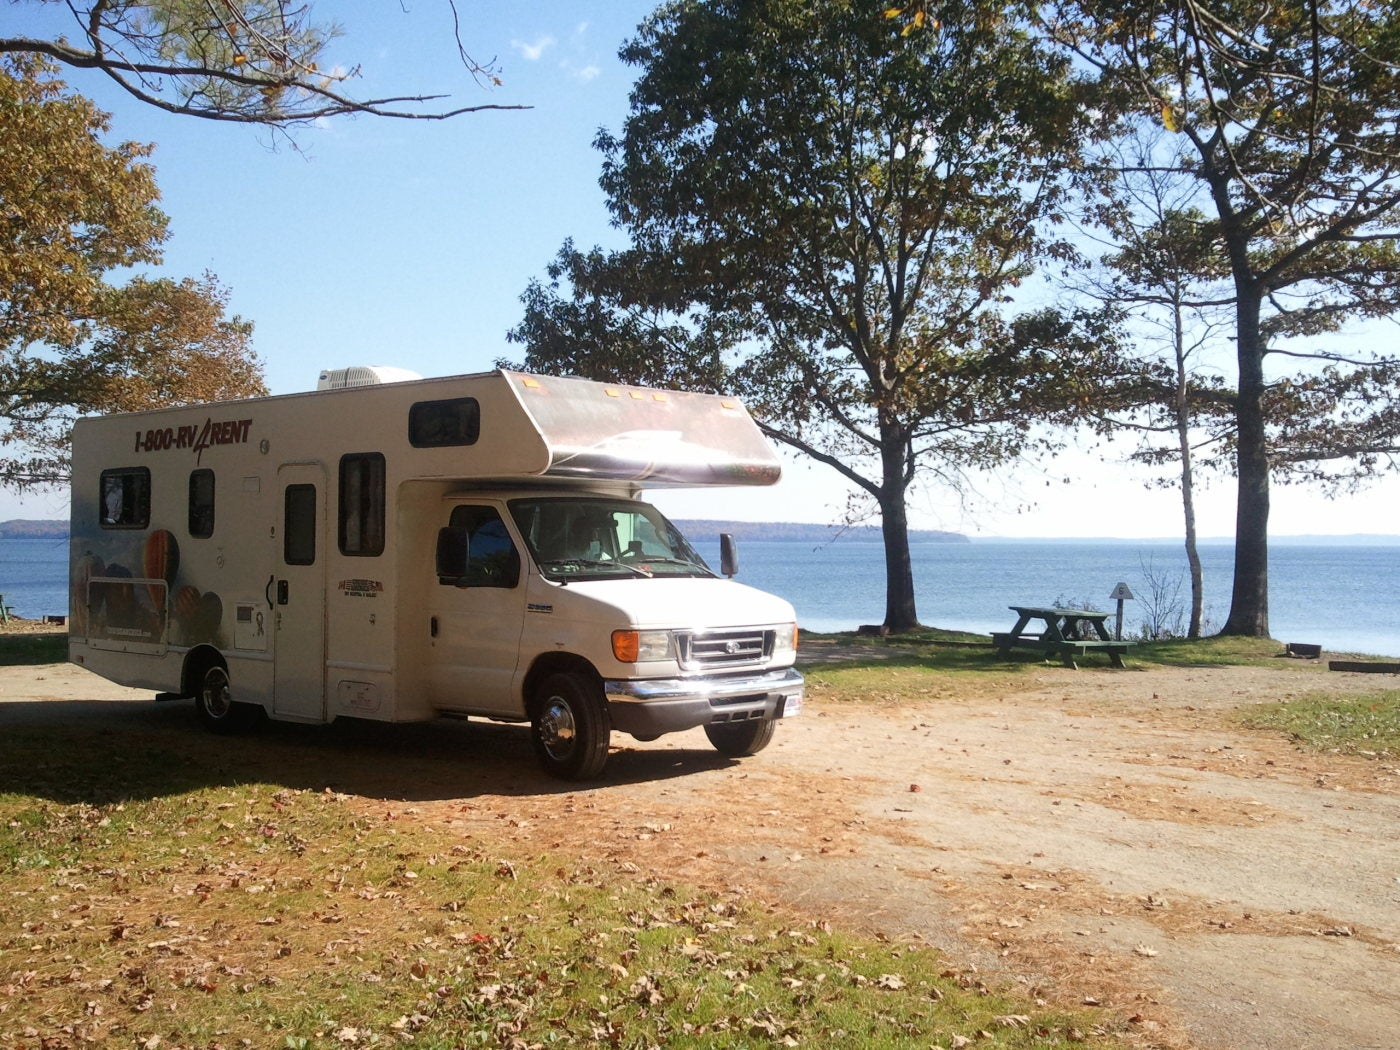 Image of recreational vehicle next to lake in late summer